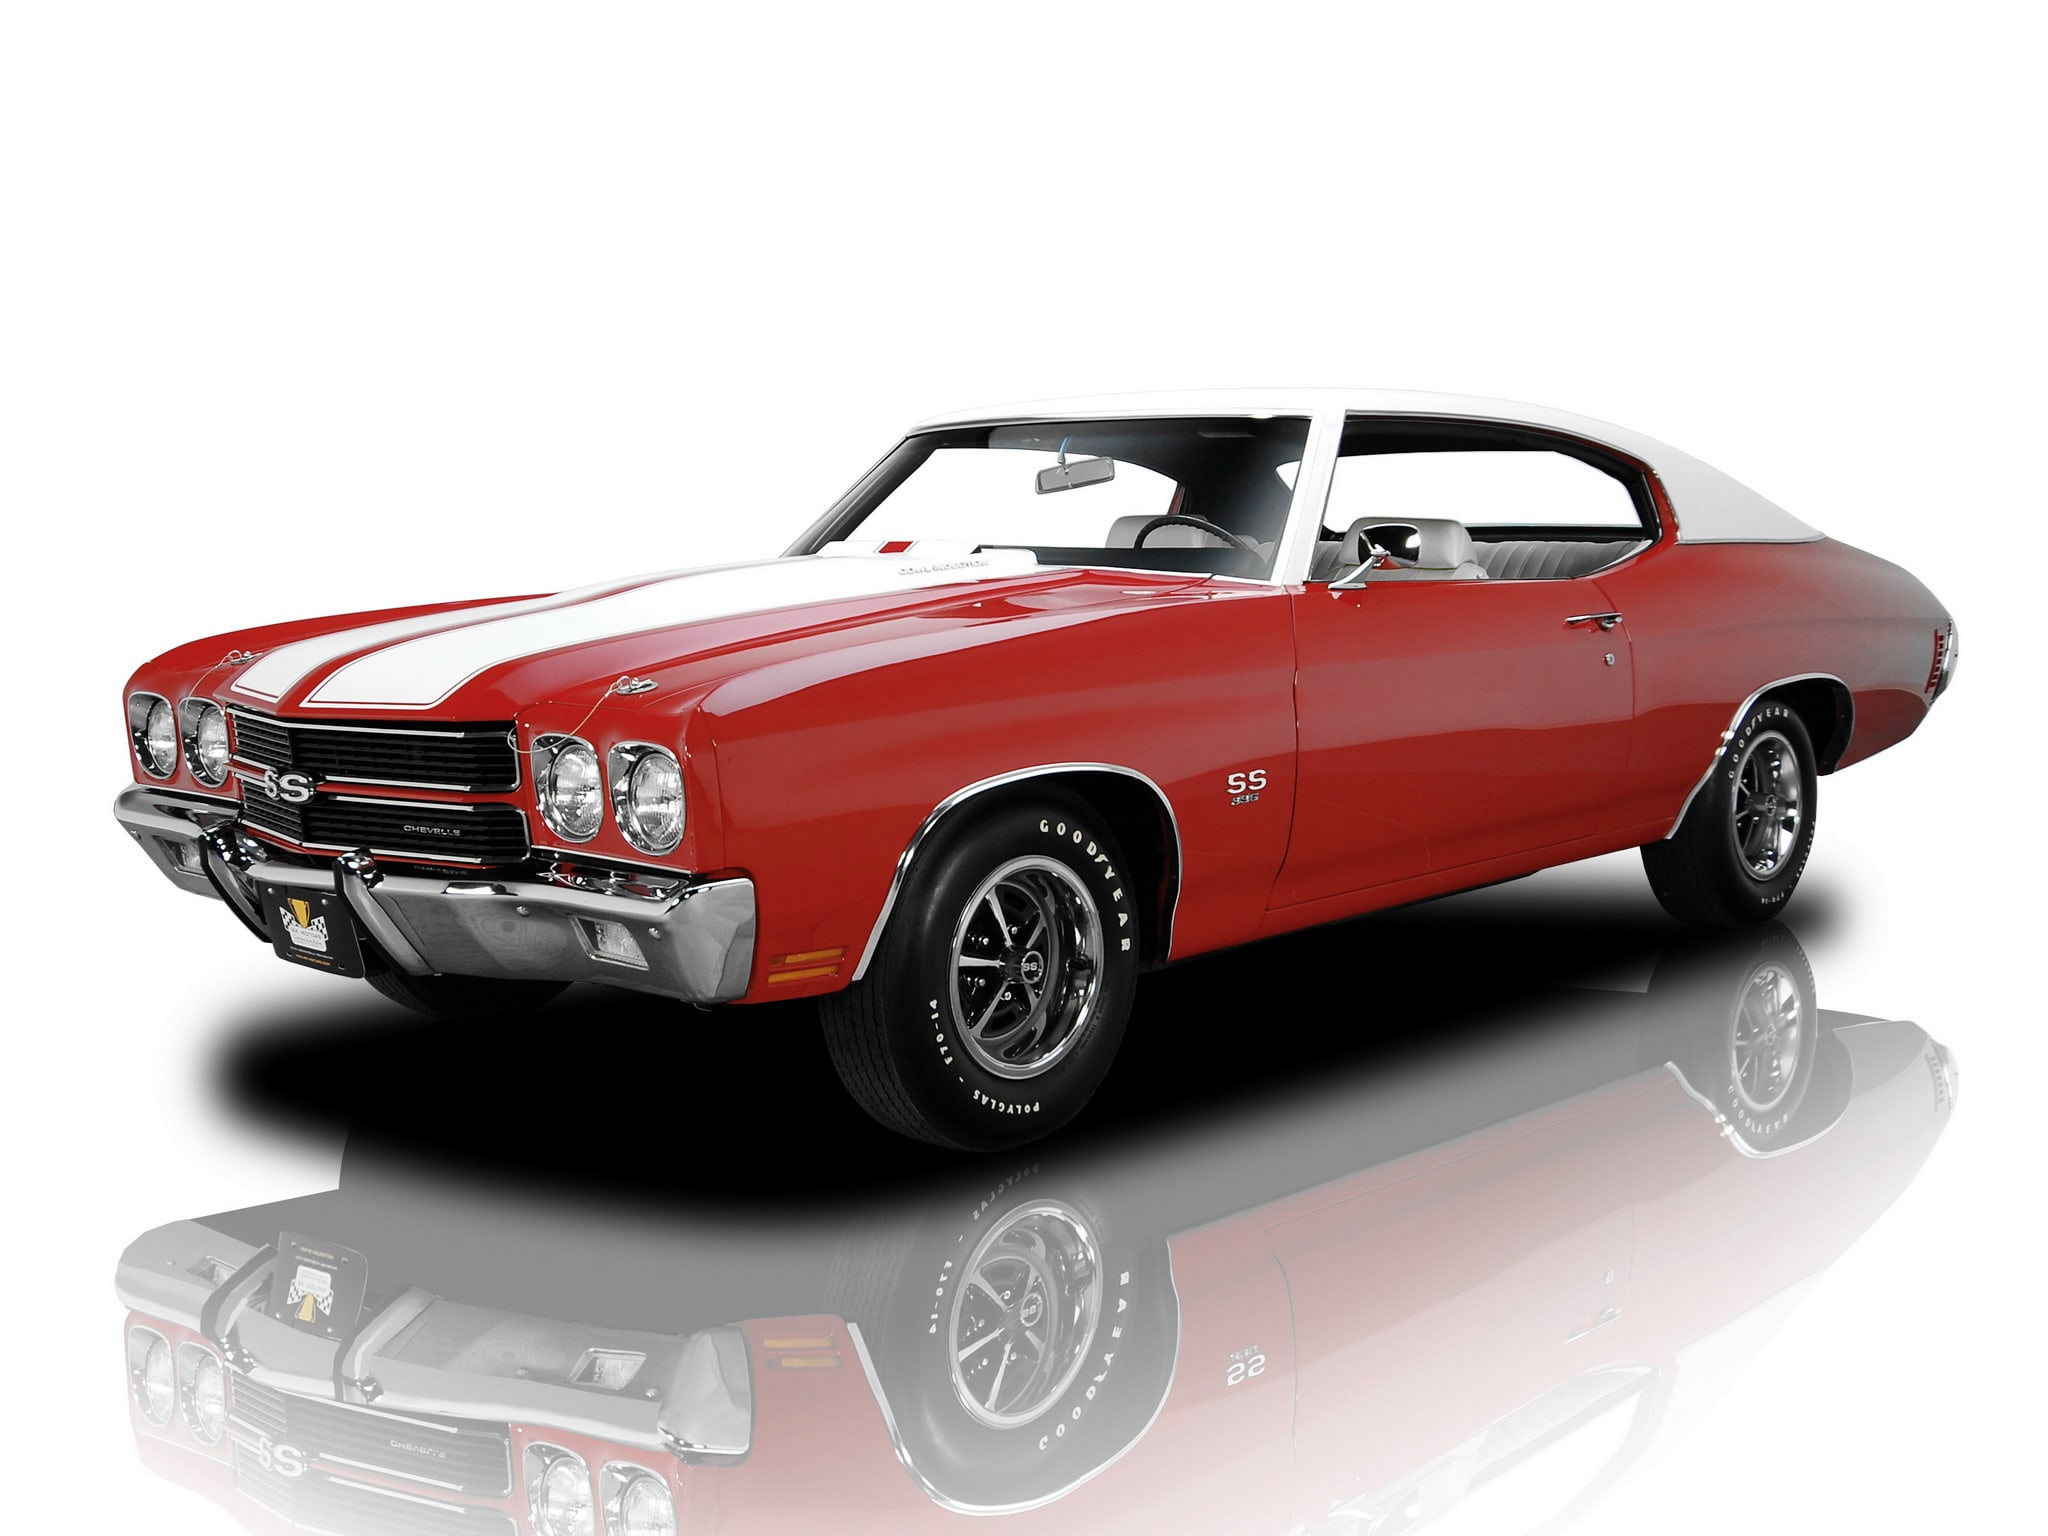 Chevelle Ss Wallpaper 1970 Chevrolet Chevelle Ss Hd Wallpapers 7wallpapers